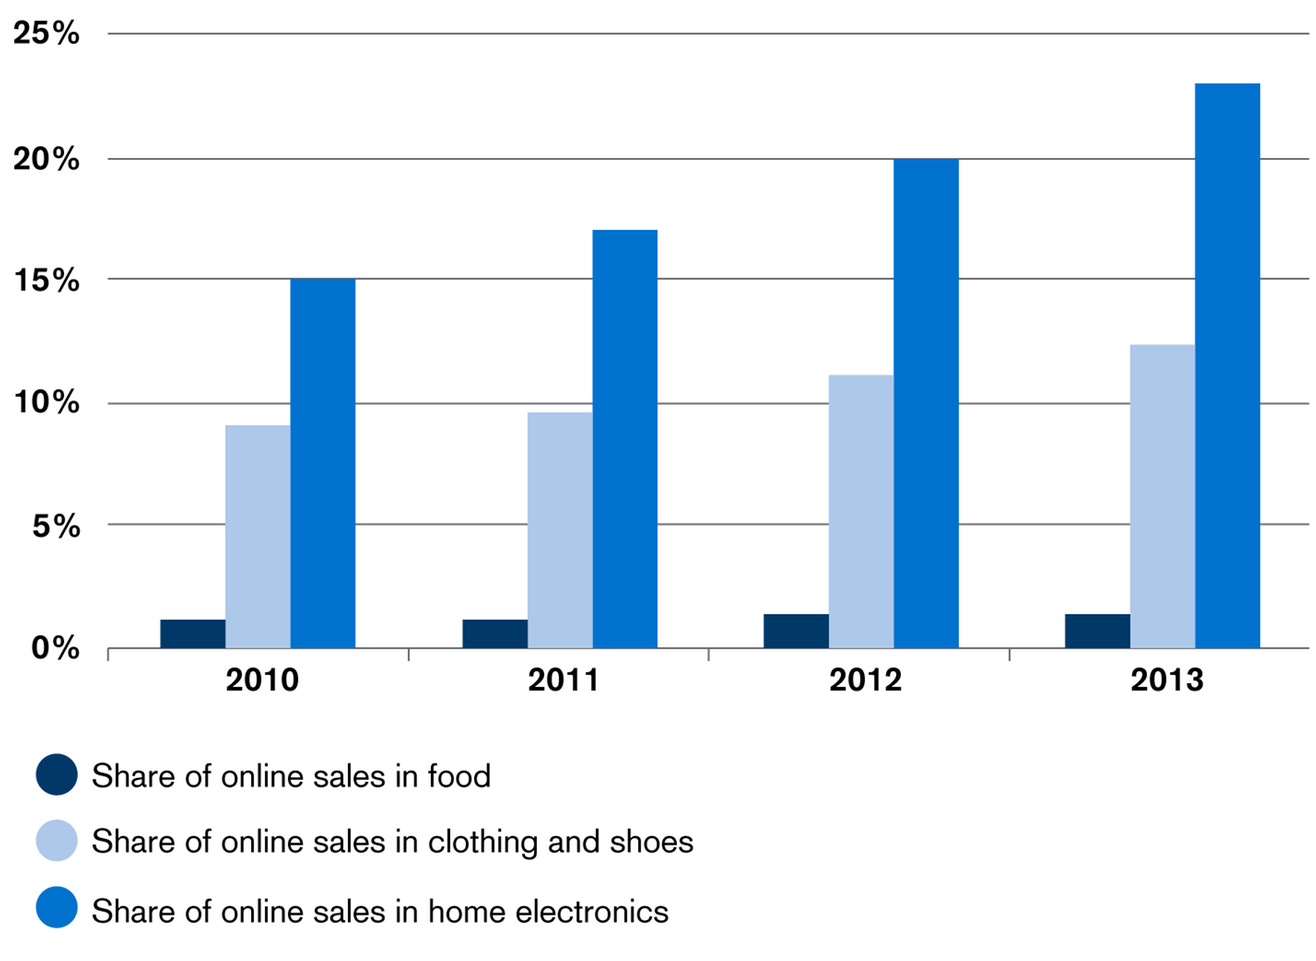 Share of Online Sales by Segment